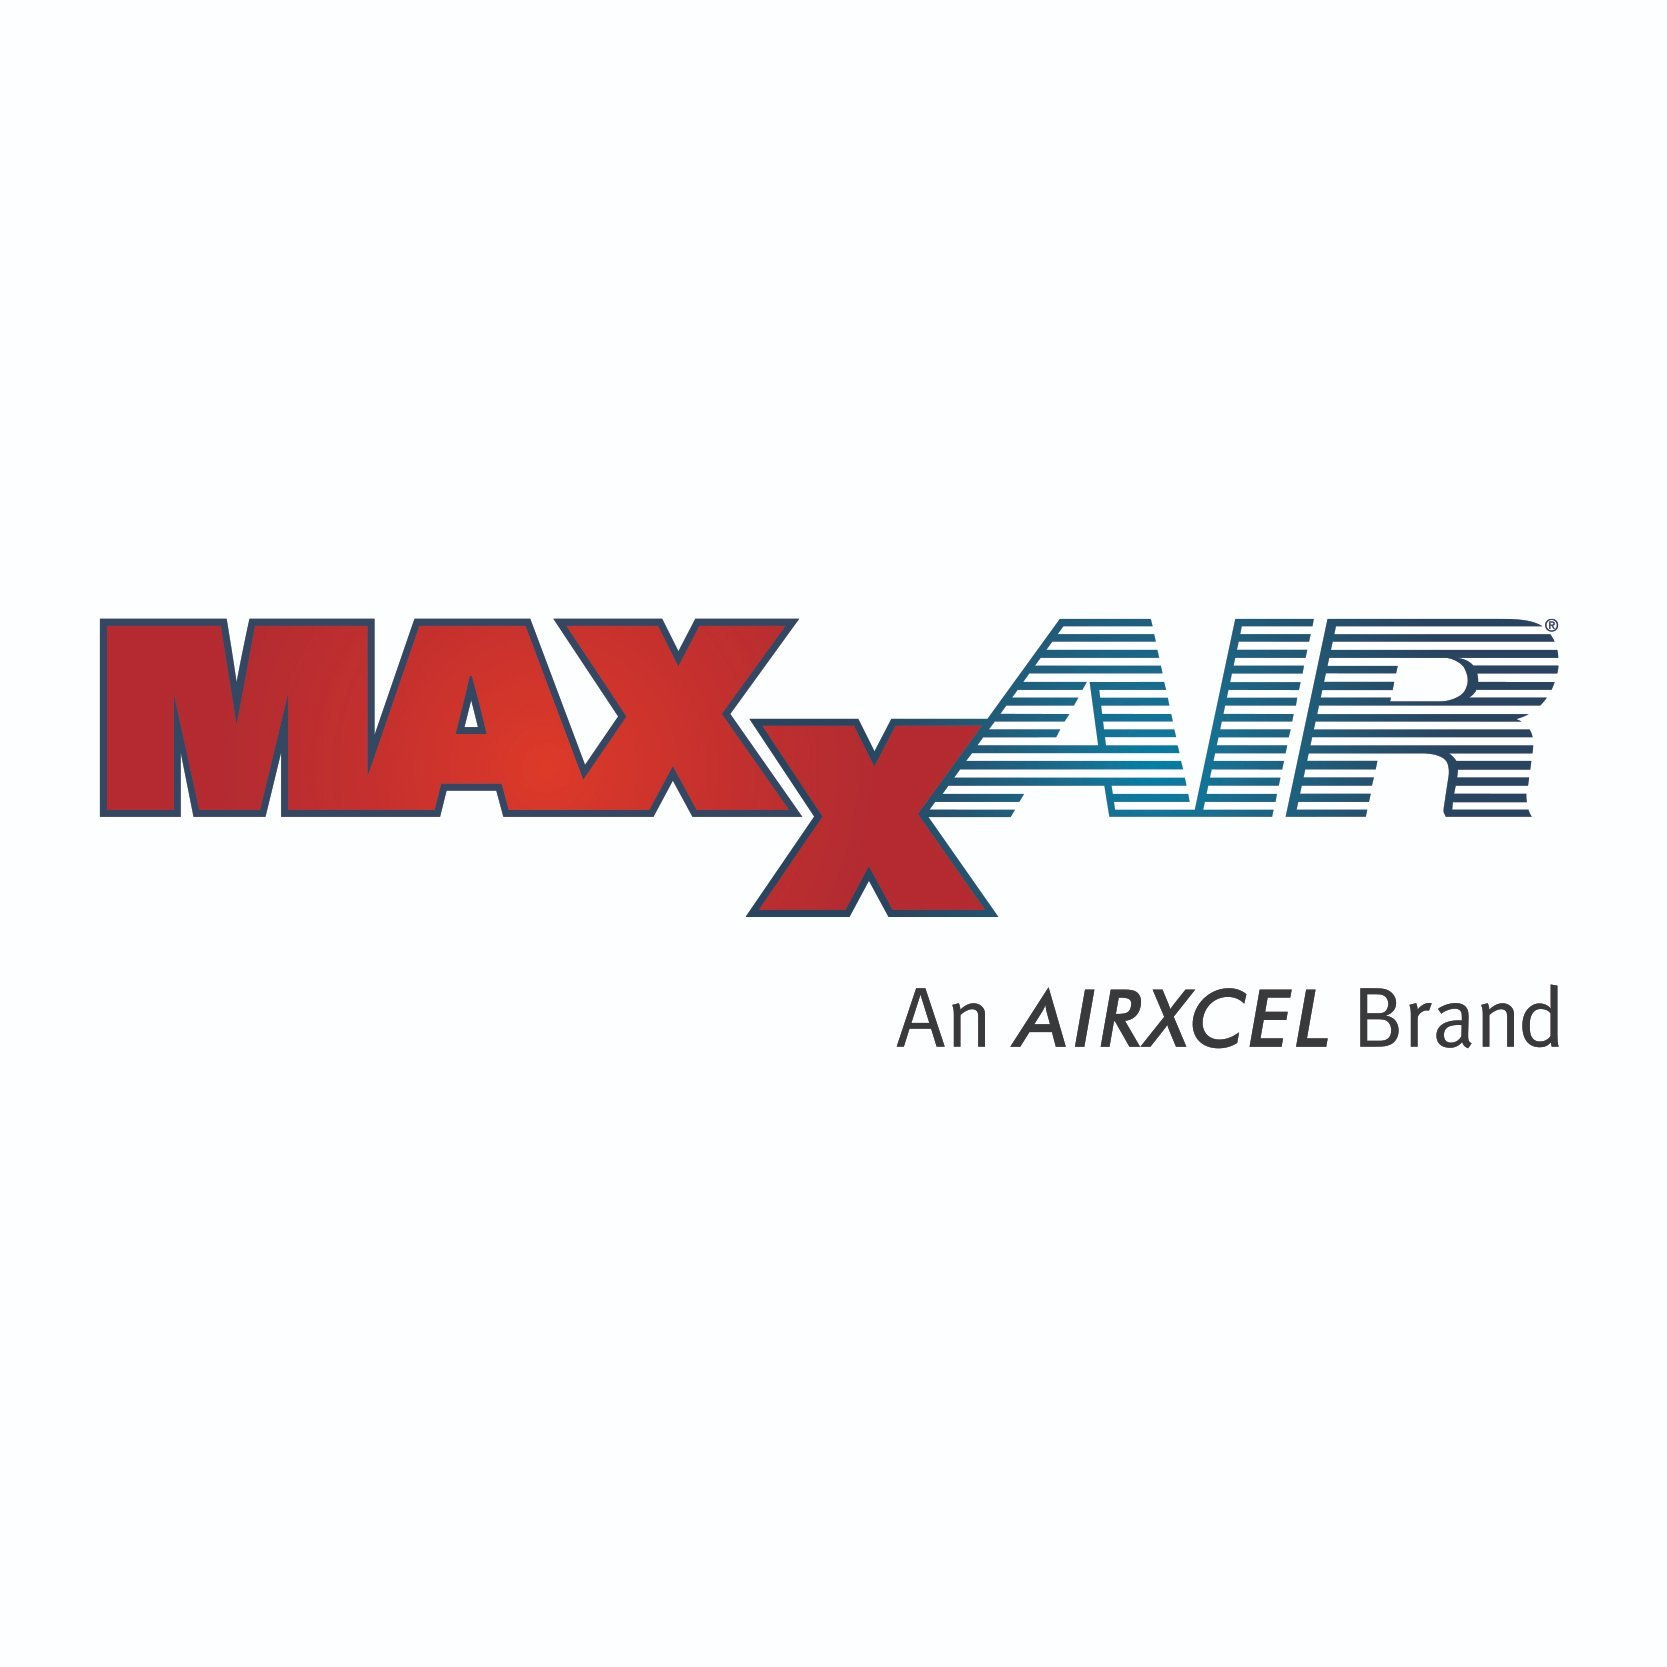 Maxxair by Airxcel on Twitter: